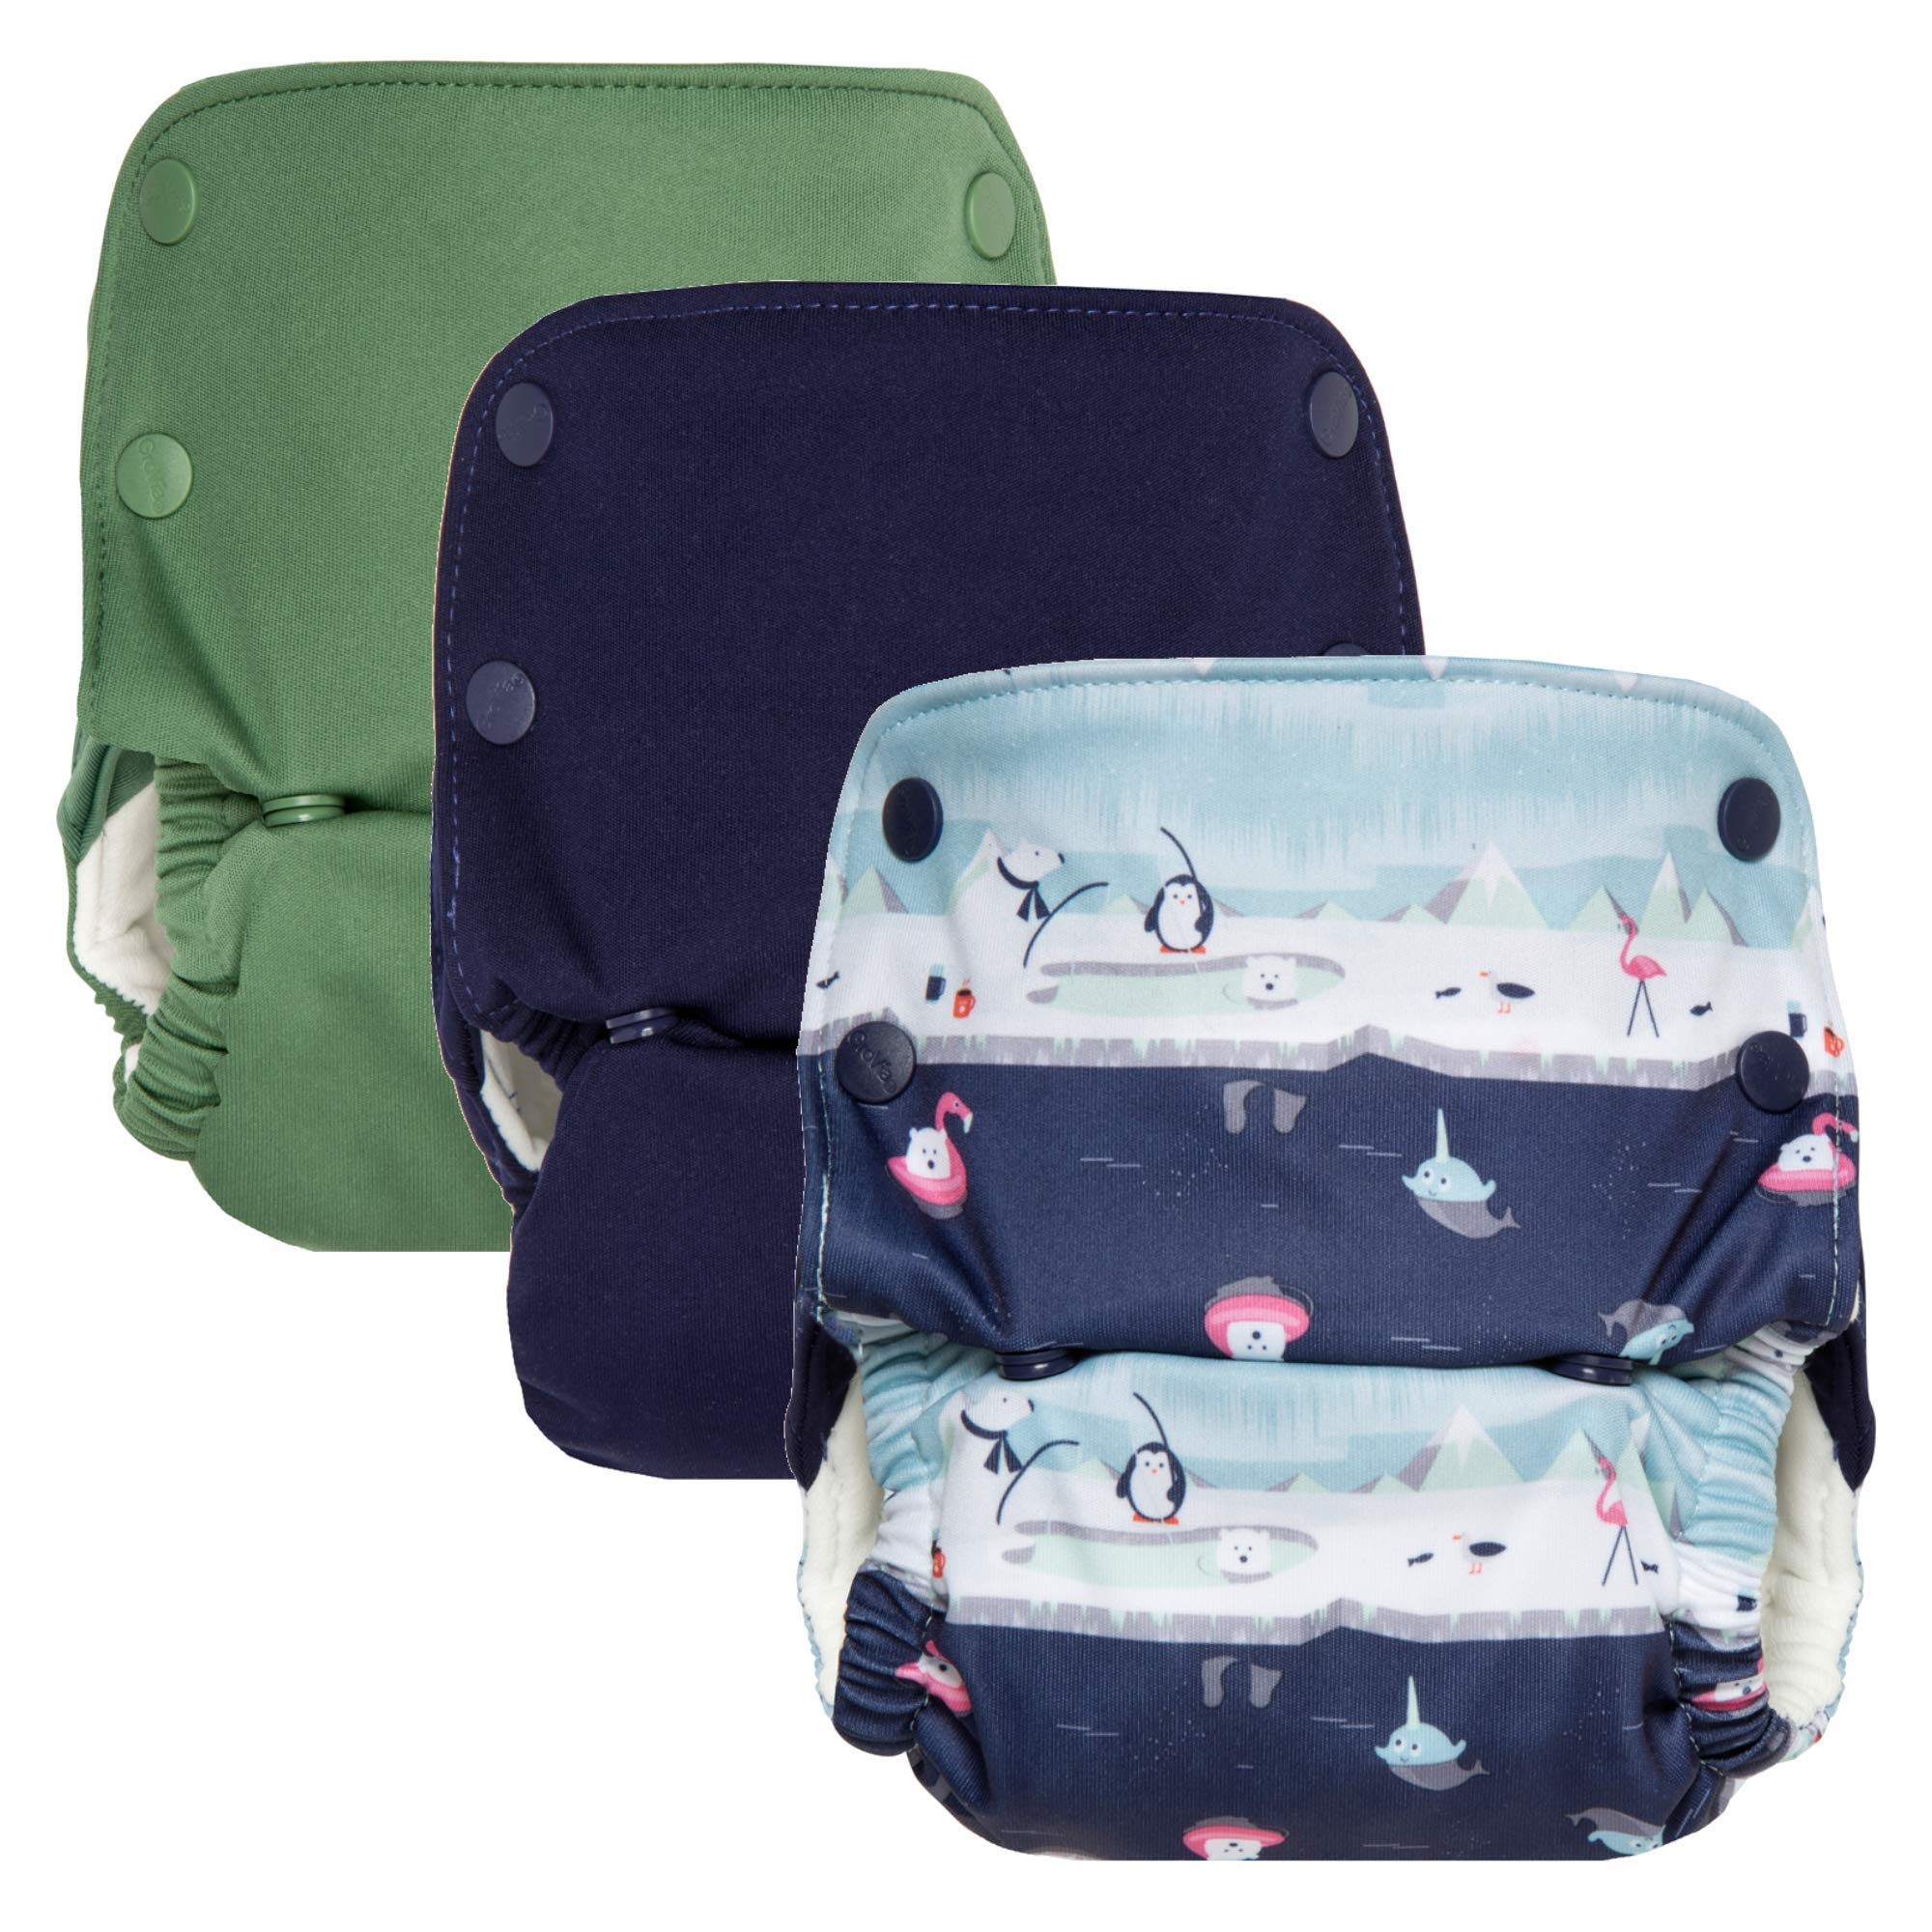 GroVia Reusable All in One Snap Baby Cloth Diaper (AIO) - 3 Pack Color Mix 4